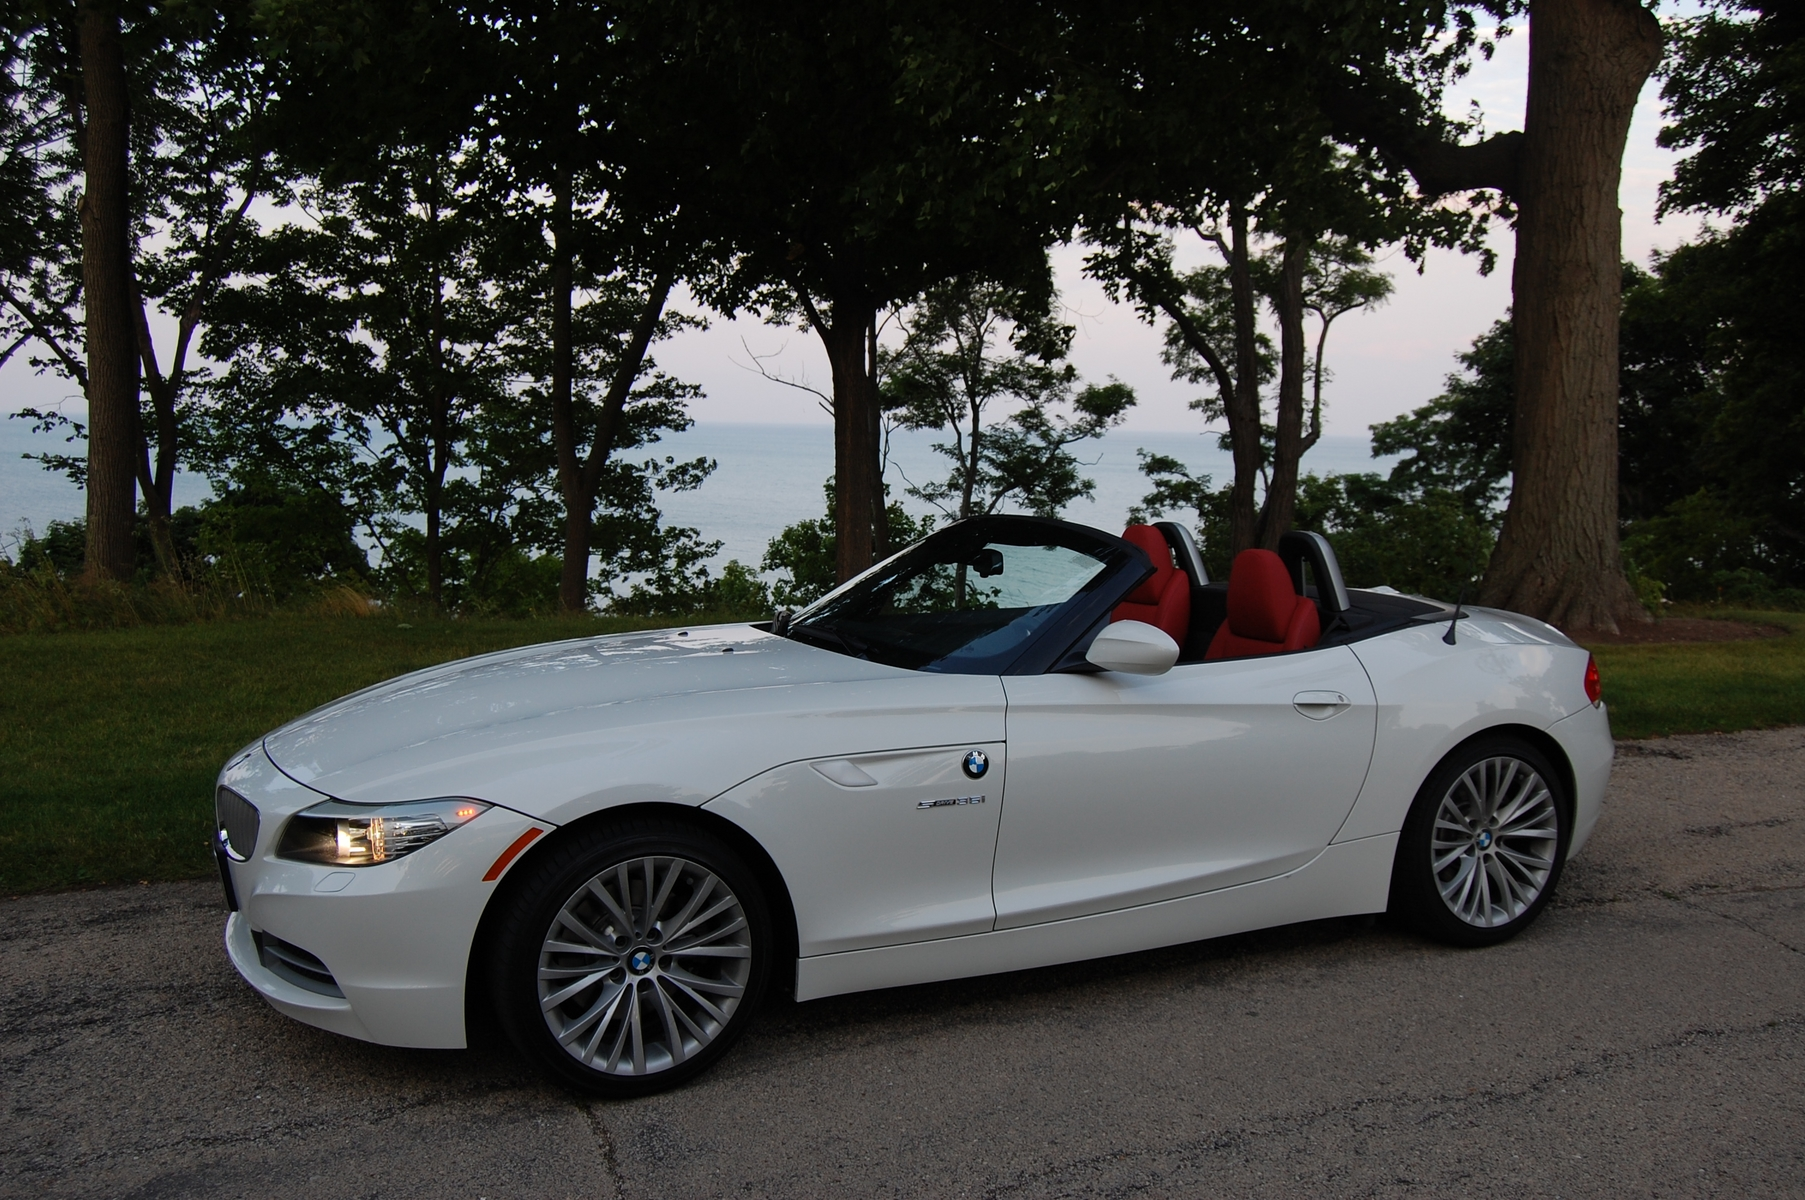 Bmw Is Recalling Certain Model Year 2009 Z4 30i And 35i